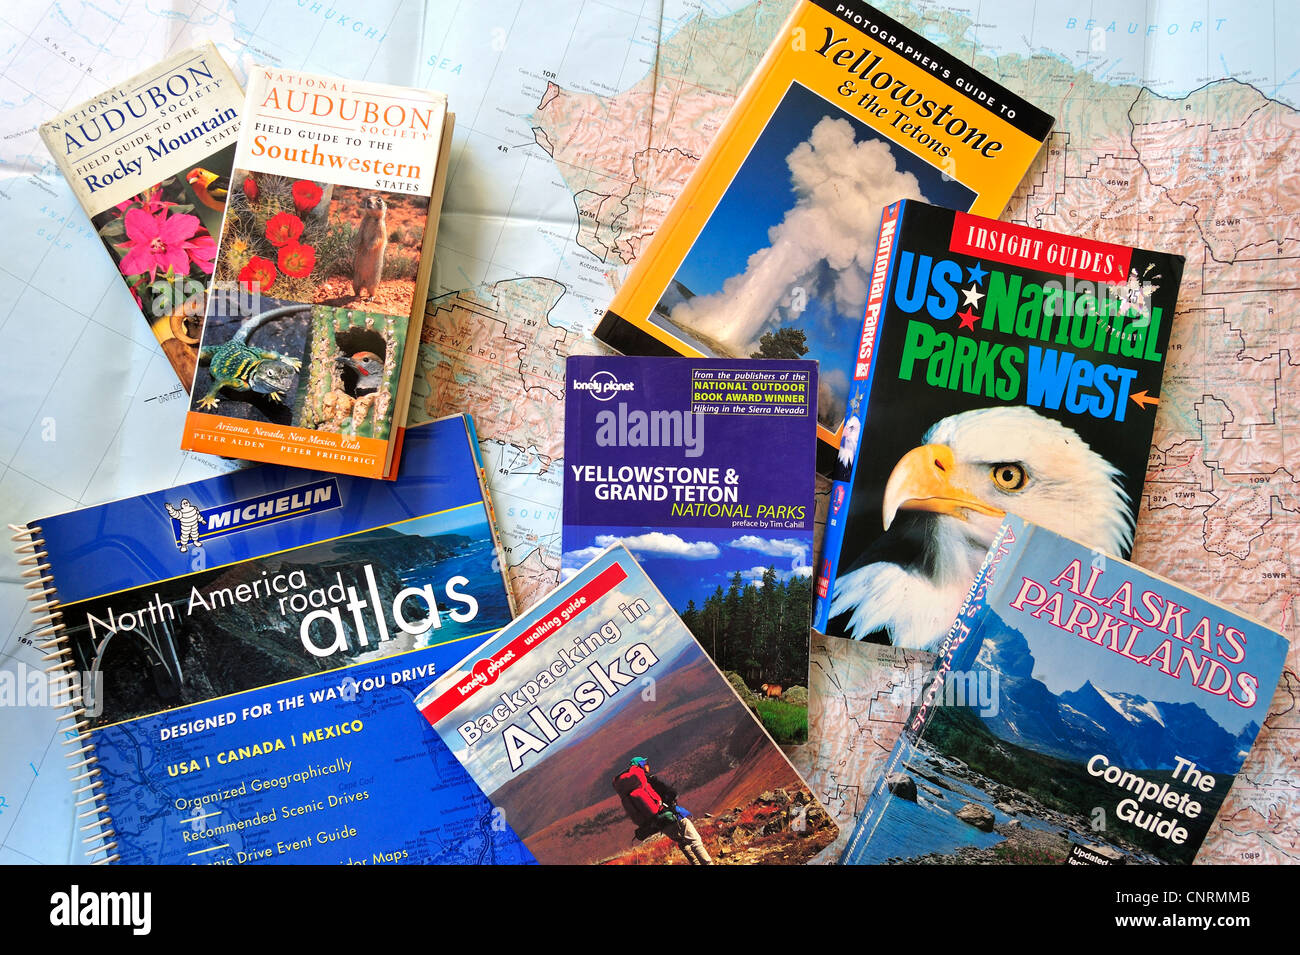 Road map and assortment of travel guides and guidebooks about North American national parks to plan backpacking - Stock Image